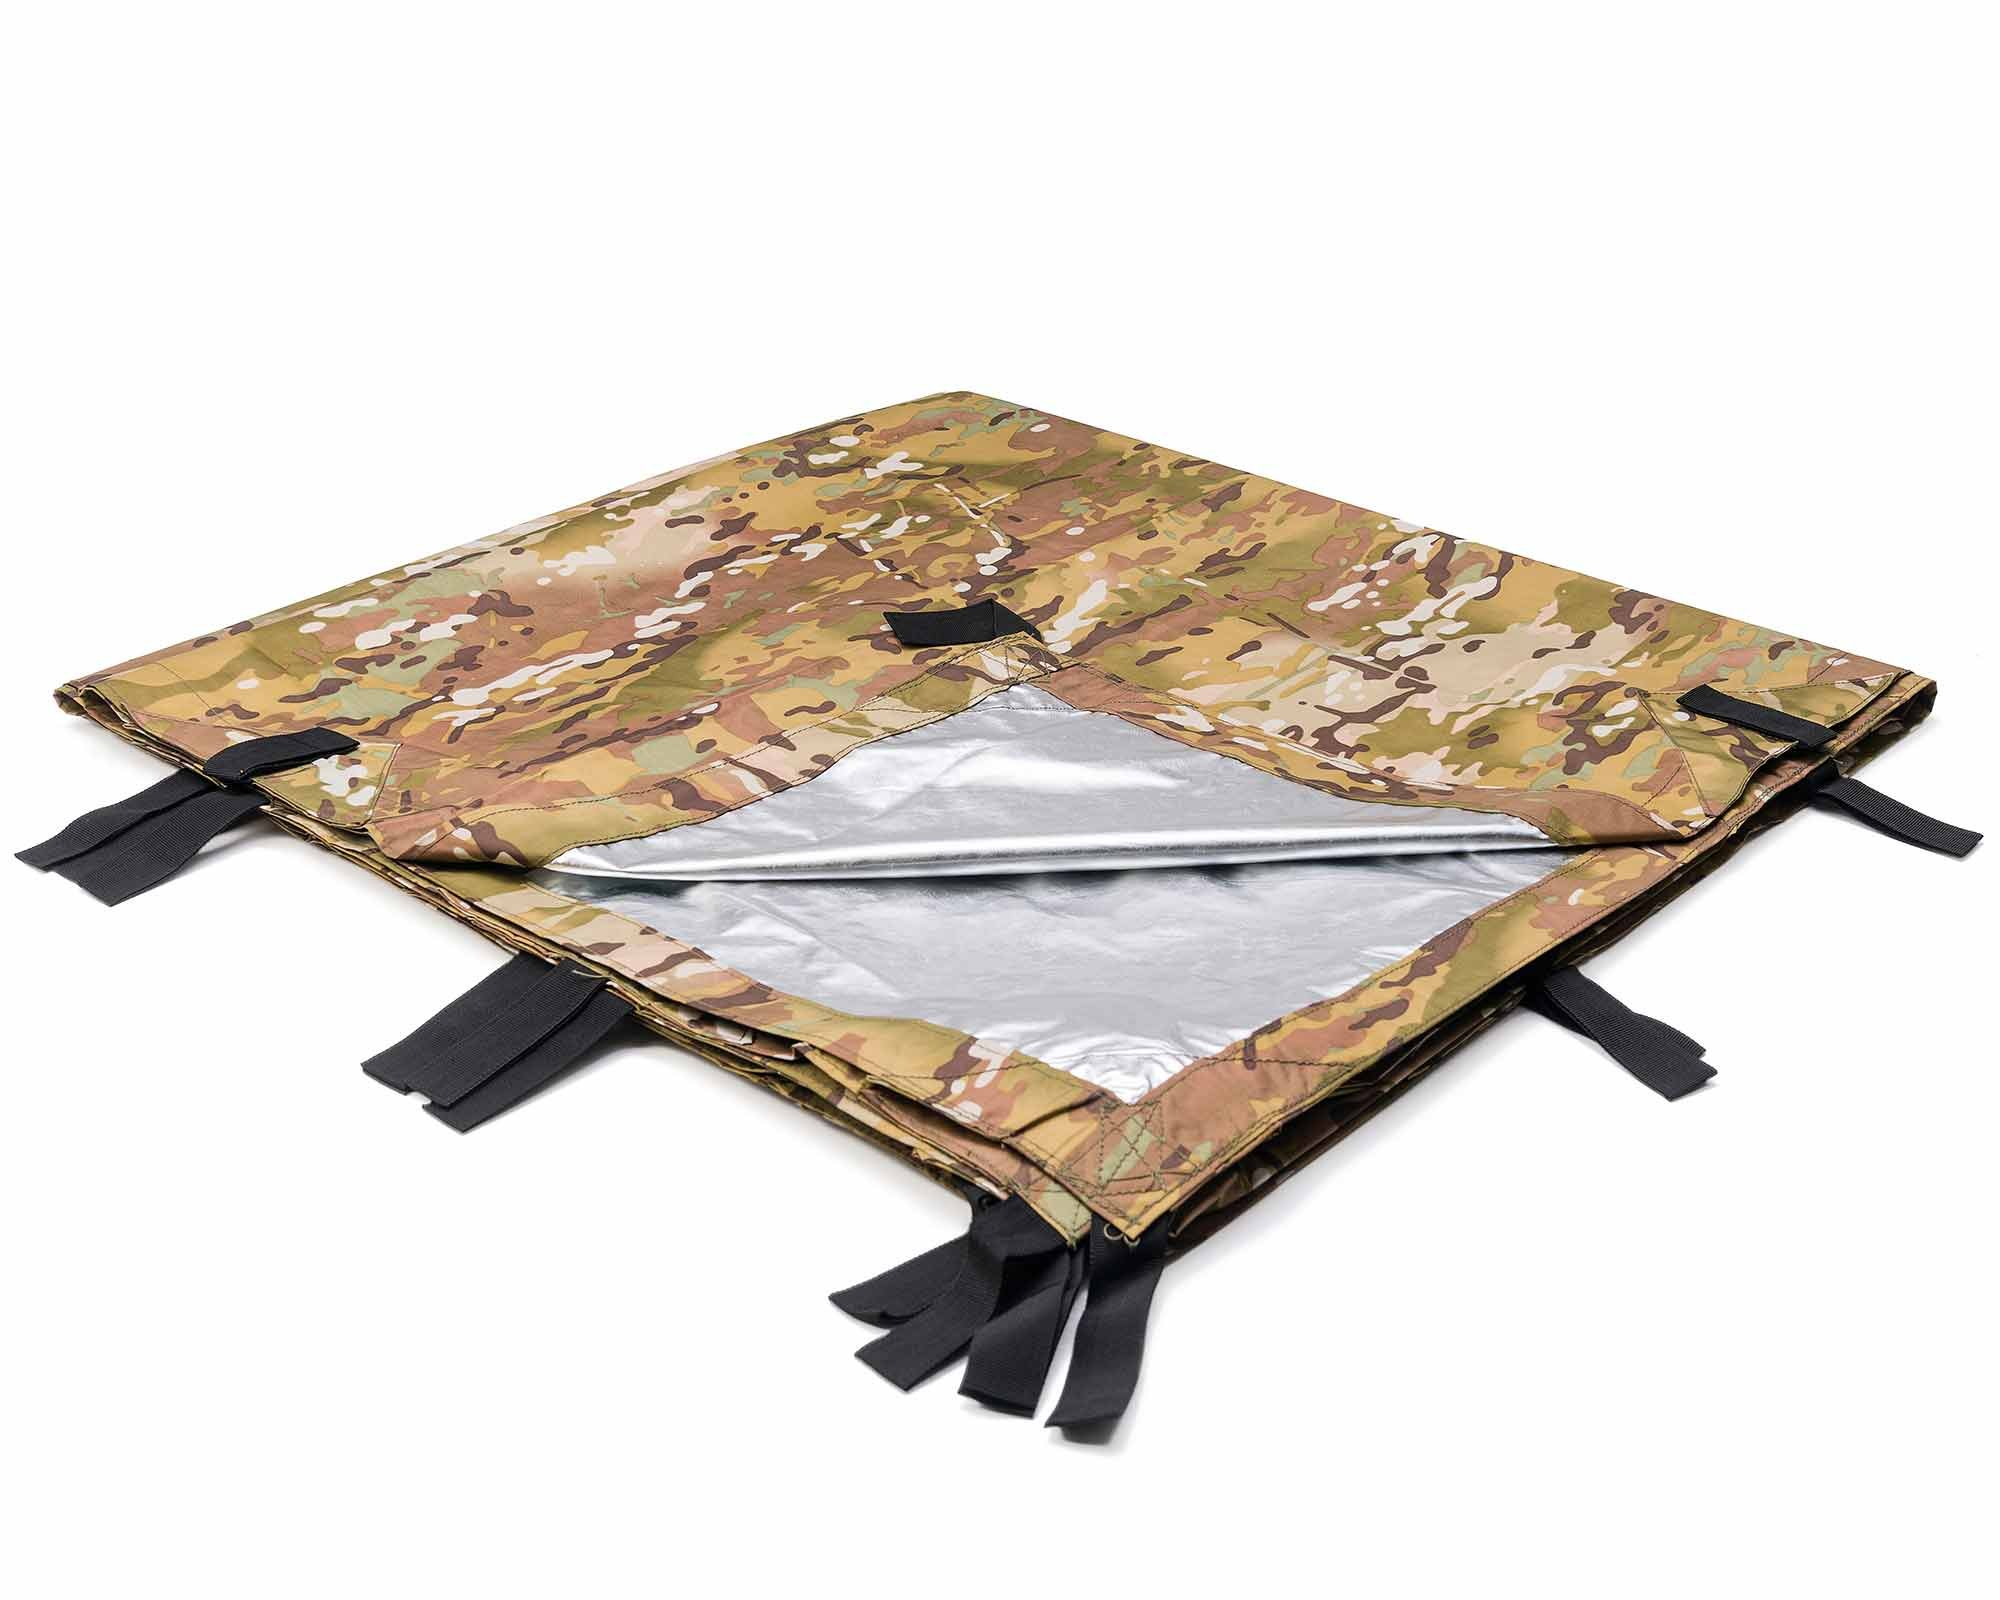 10' x 10' Thermal Reflective Water Proof Tarpaulin Shelter | Mongrel EDT By Arcadia Gear | Multi-Terrain Pattern Tarp Designed For When Your Life Depends On It